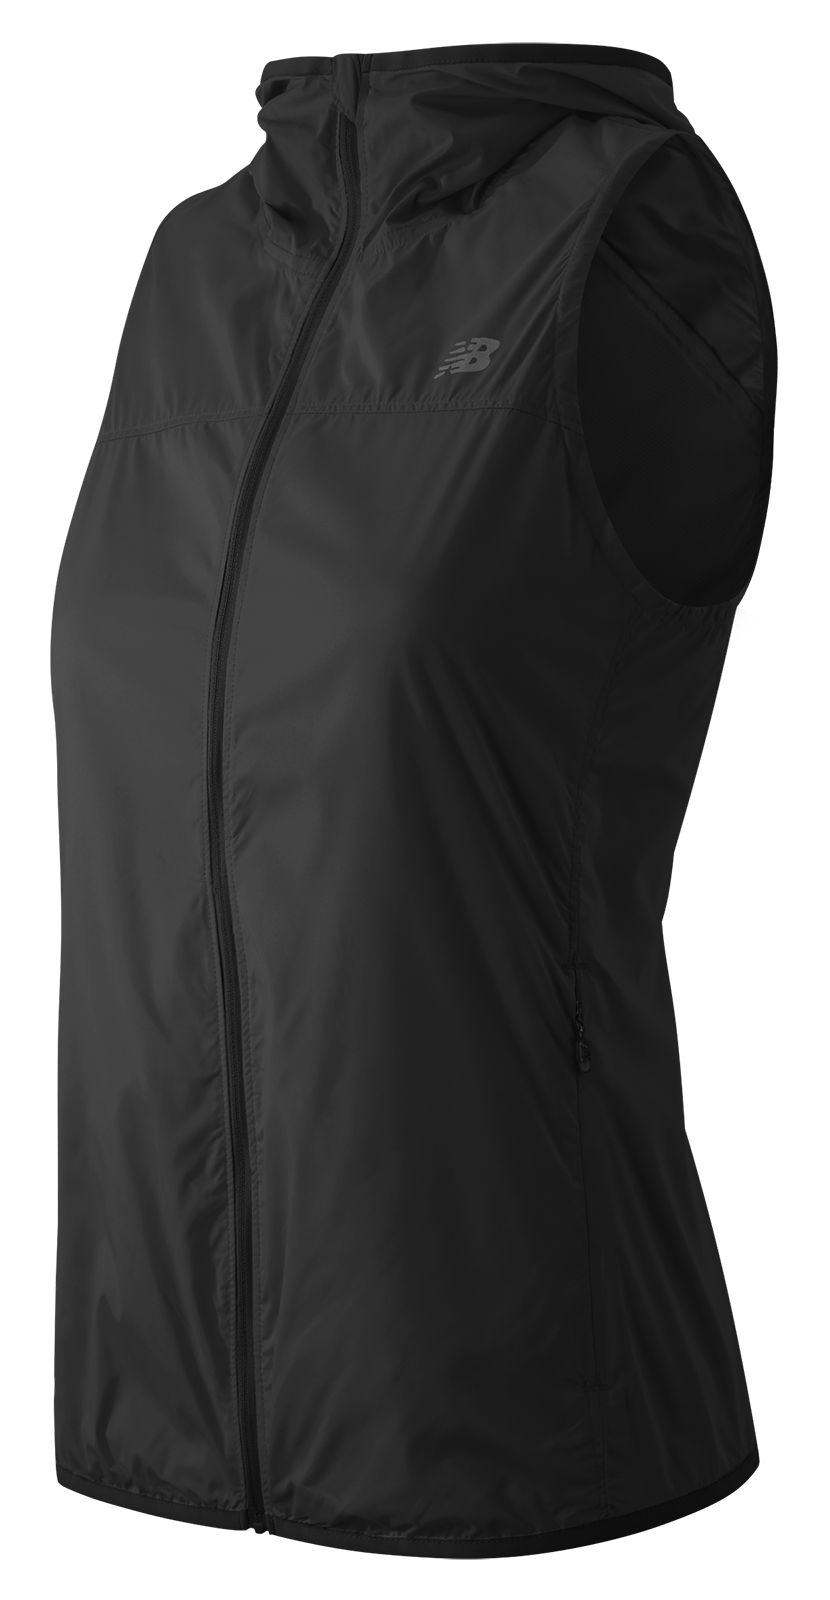 New Balance : Windcheater Vest : Women's Apparel Outlet : WV53112BK